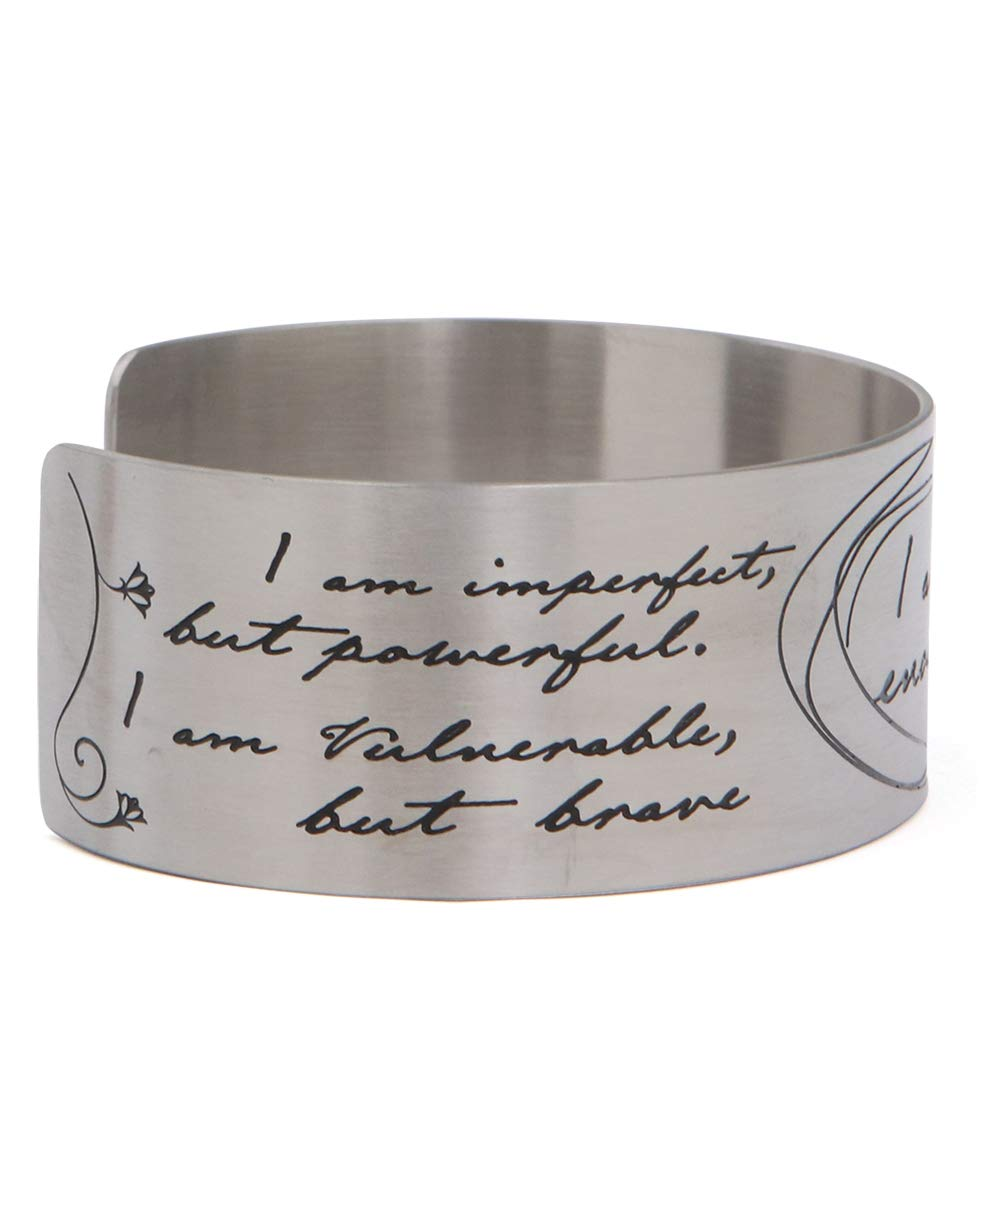 Vera Viva I Am Enough Artistic Calligraphy Adjustable Cuff Bracelet | Made of Stainless Steel | Open Designs Fit Most Wrist Size | Cuff Size 6.5 Inches by Vera Viva (Image #3)